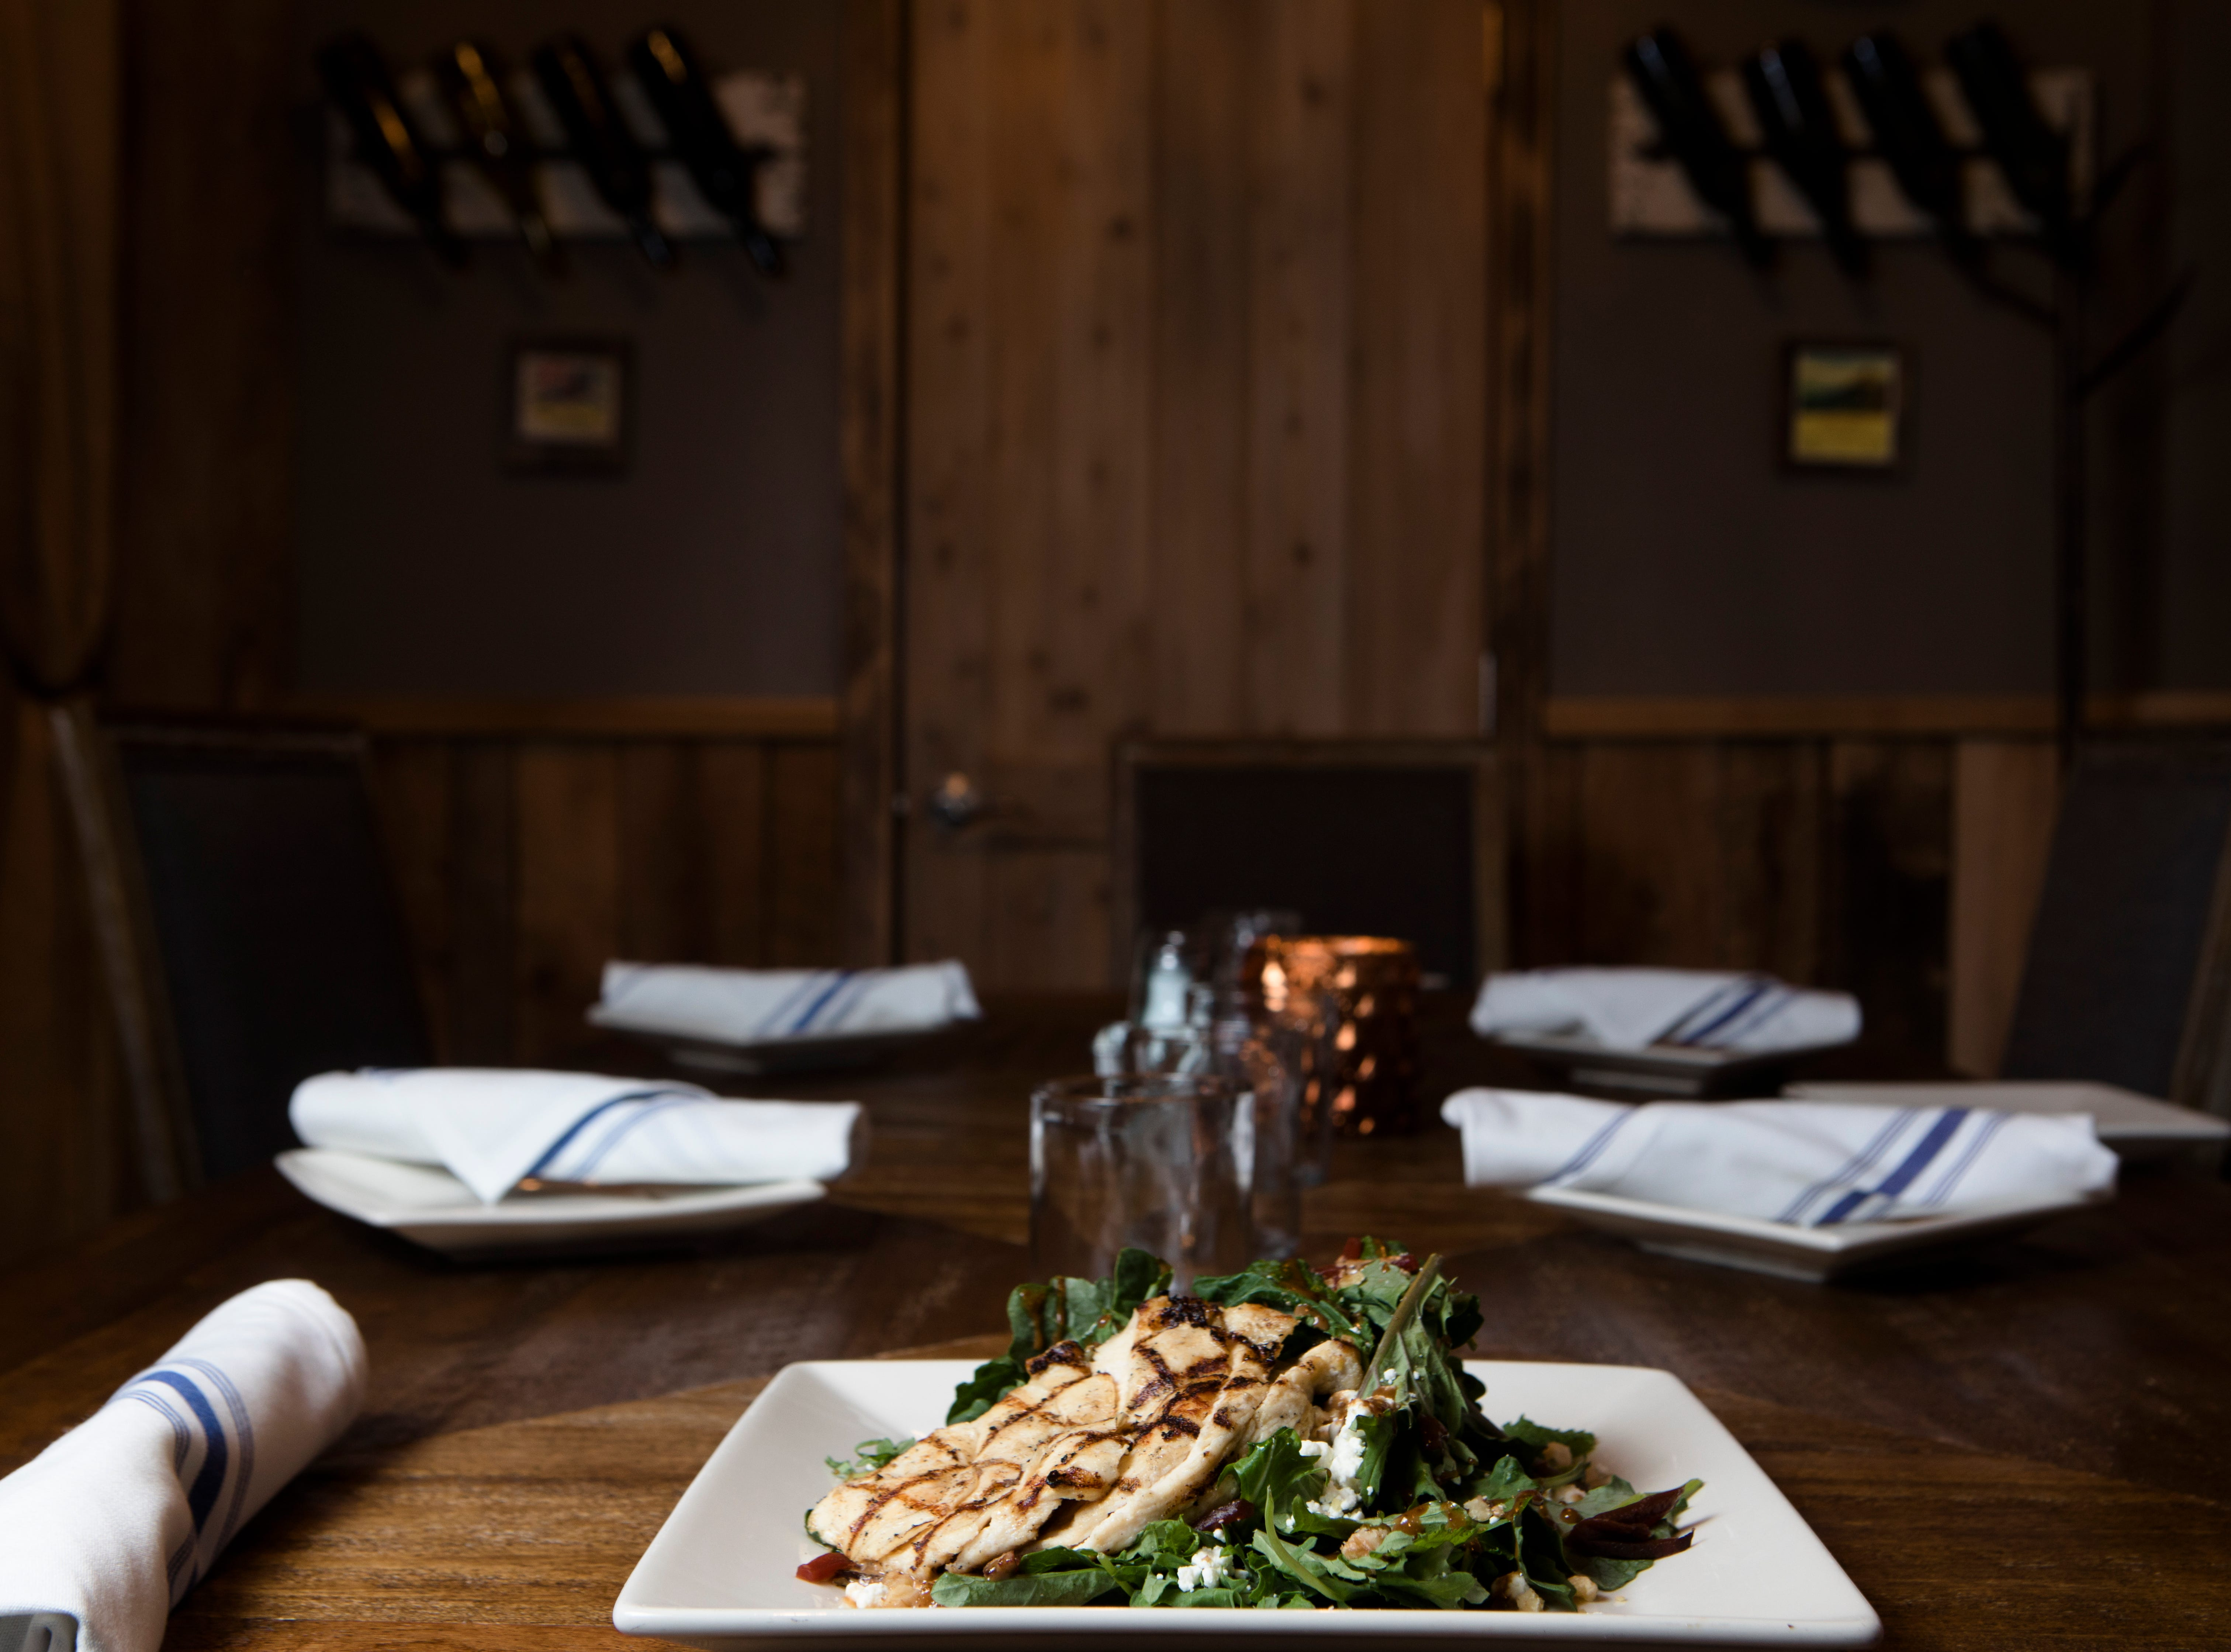 Baby Kale and Beet Grilled Chicken Salad made with sweet baby kale, julienne beets, crumbled goat cheese, toasted walnuts, char-grilled chicken breast, balsamic honey Dijon dressing at Napa kitchen + bar on Friday, Nov. 9, 2018.